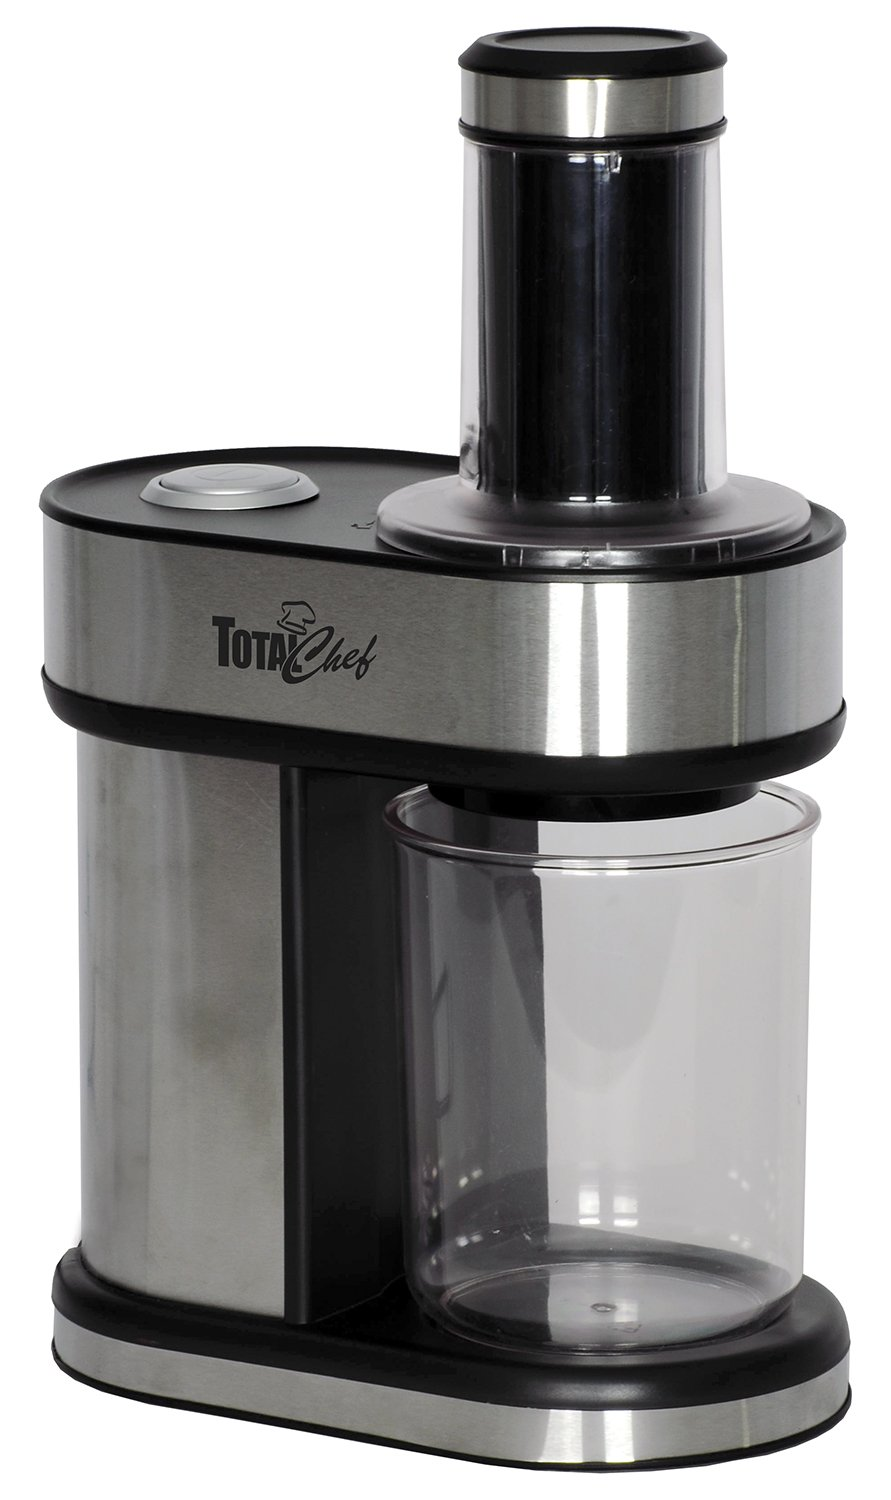 Total Chef TCES03 Electric Spiralizer, Black